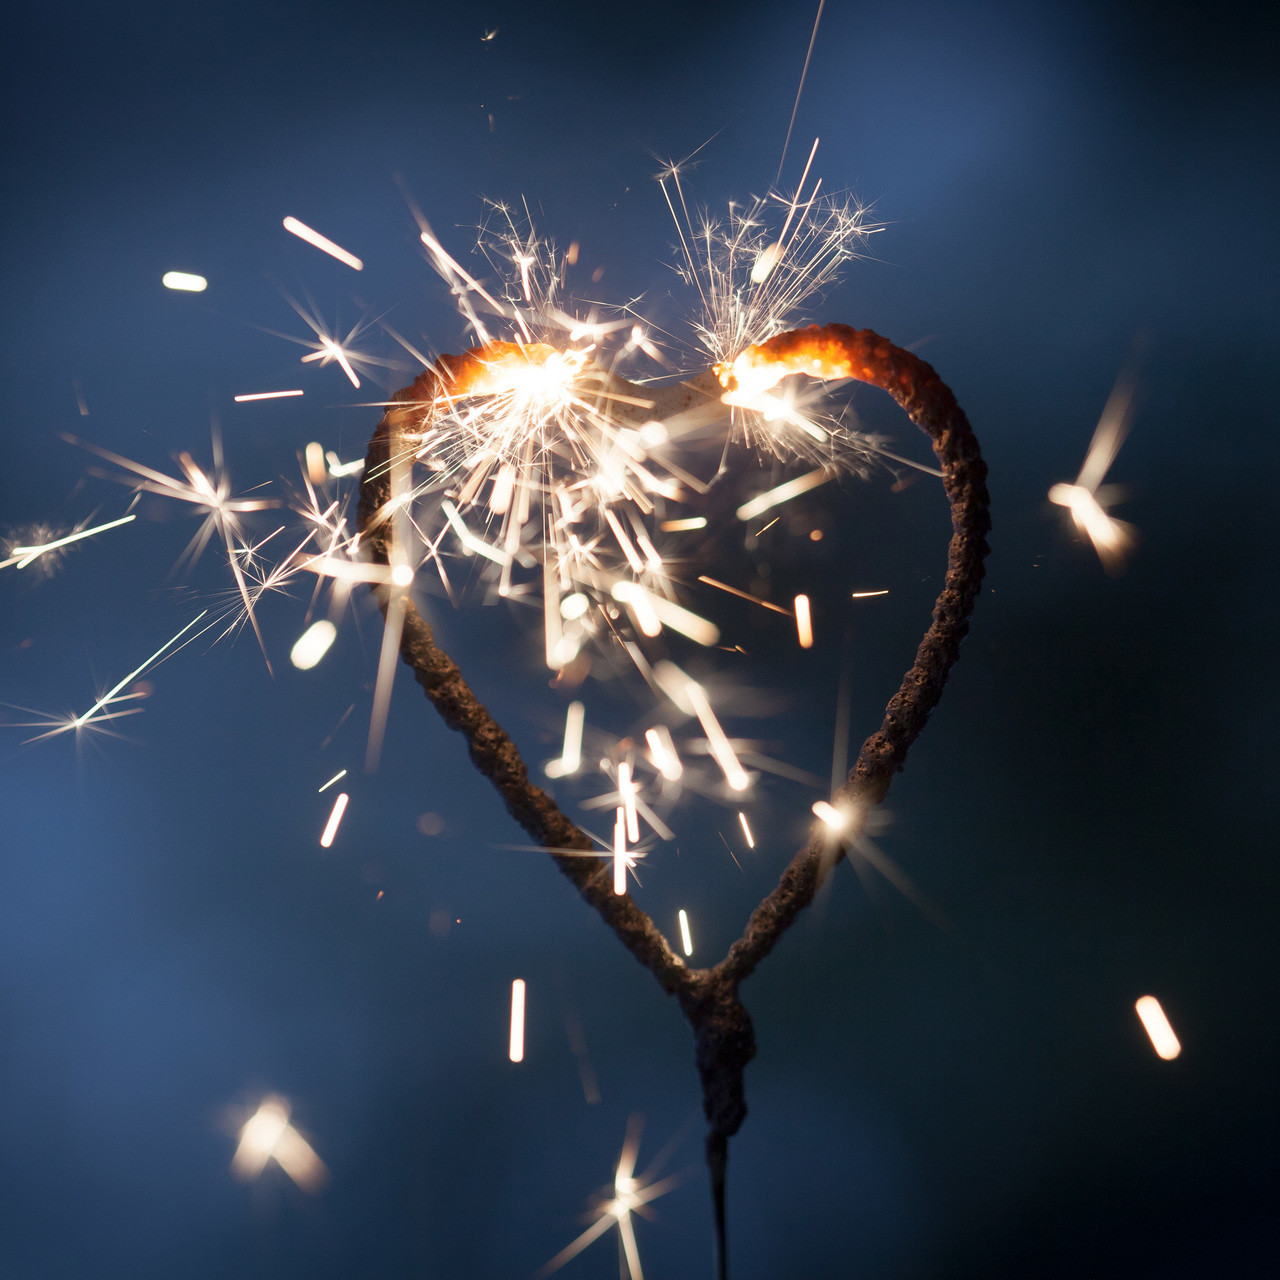 Fall Wedding Wallpaper Heart Shaped Wedding Sparklers 5 Quot King Of Sparklers